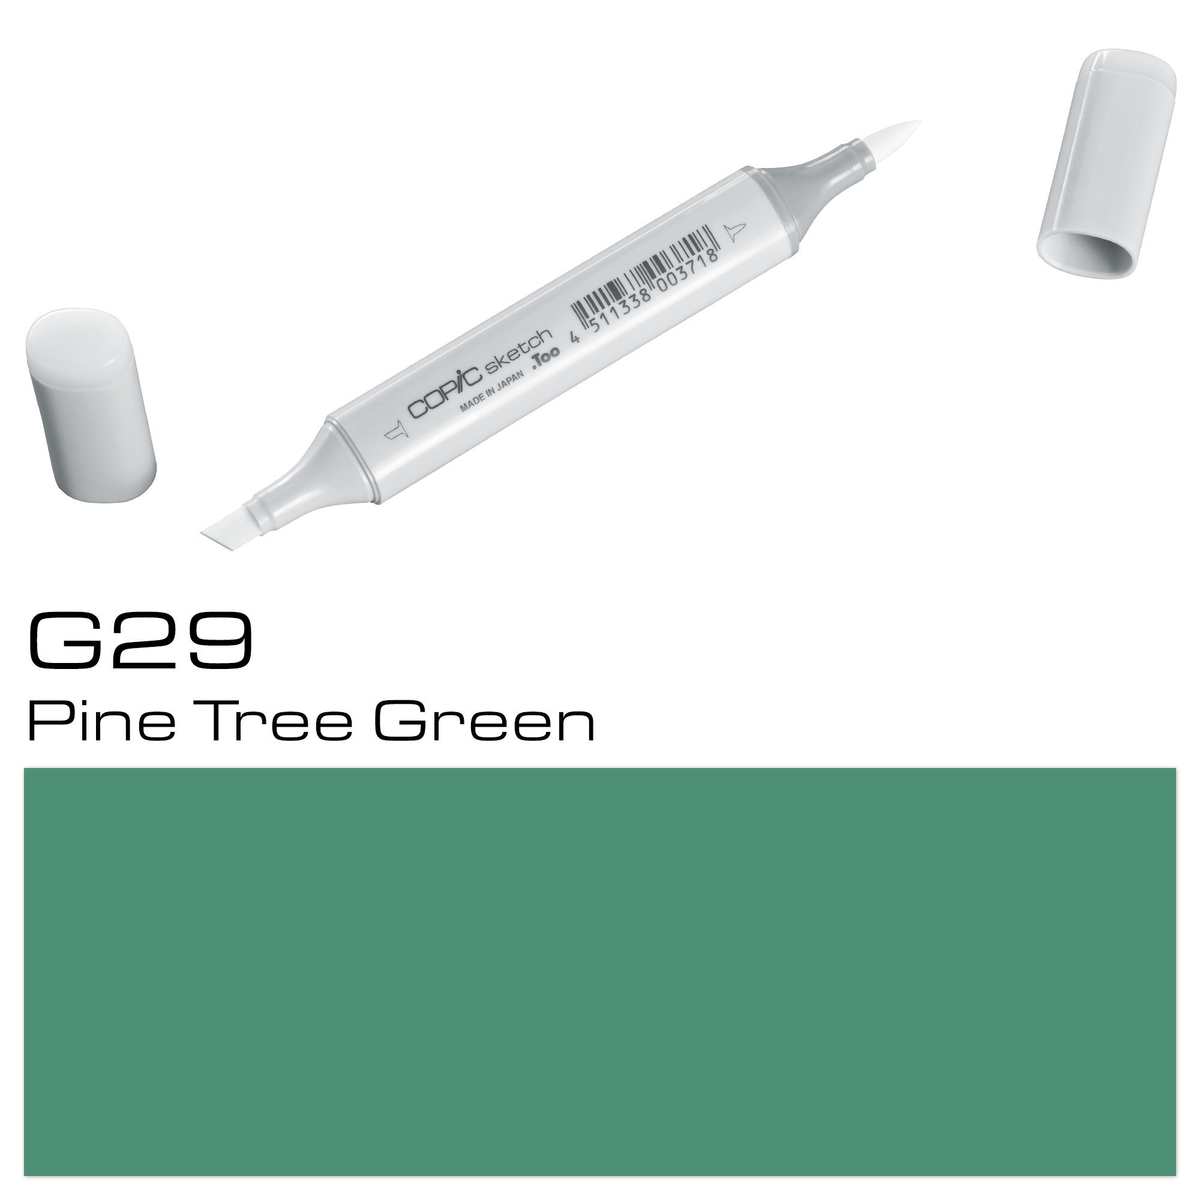 Copic Sketch G 29 pine tr gree